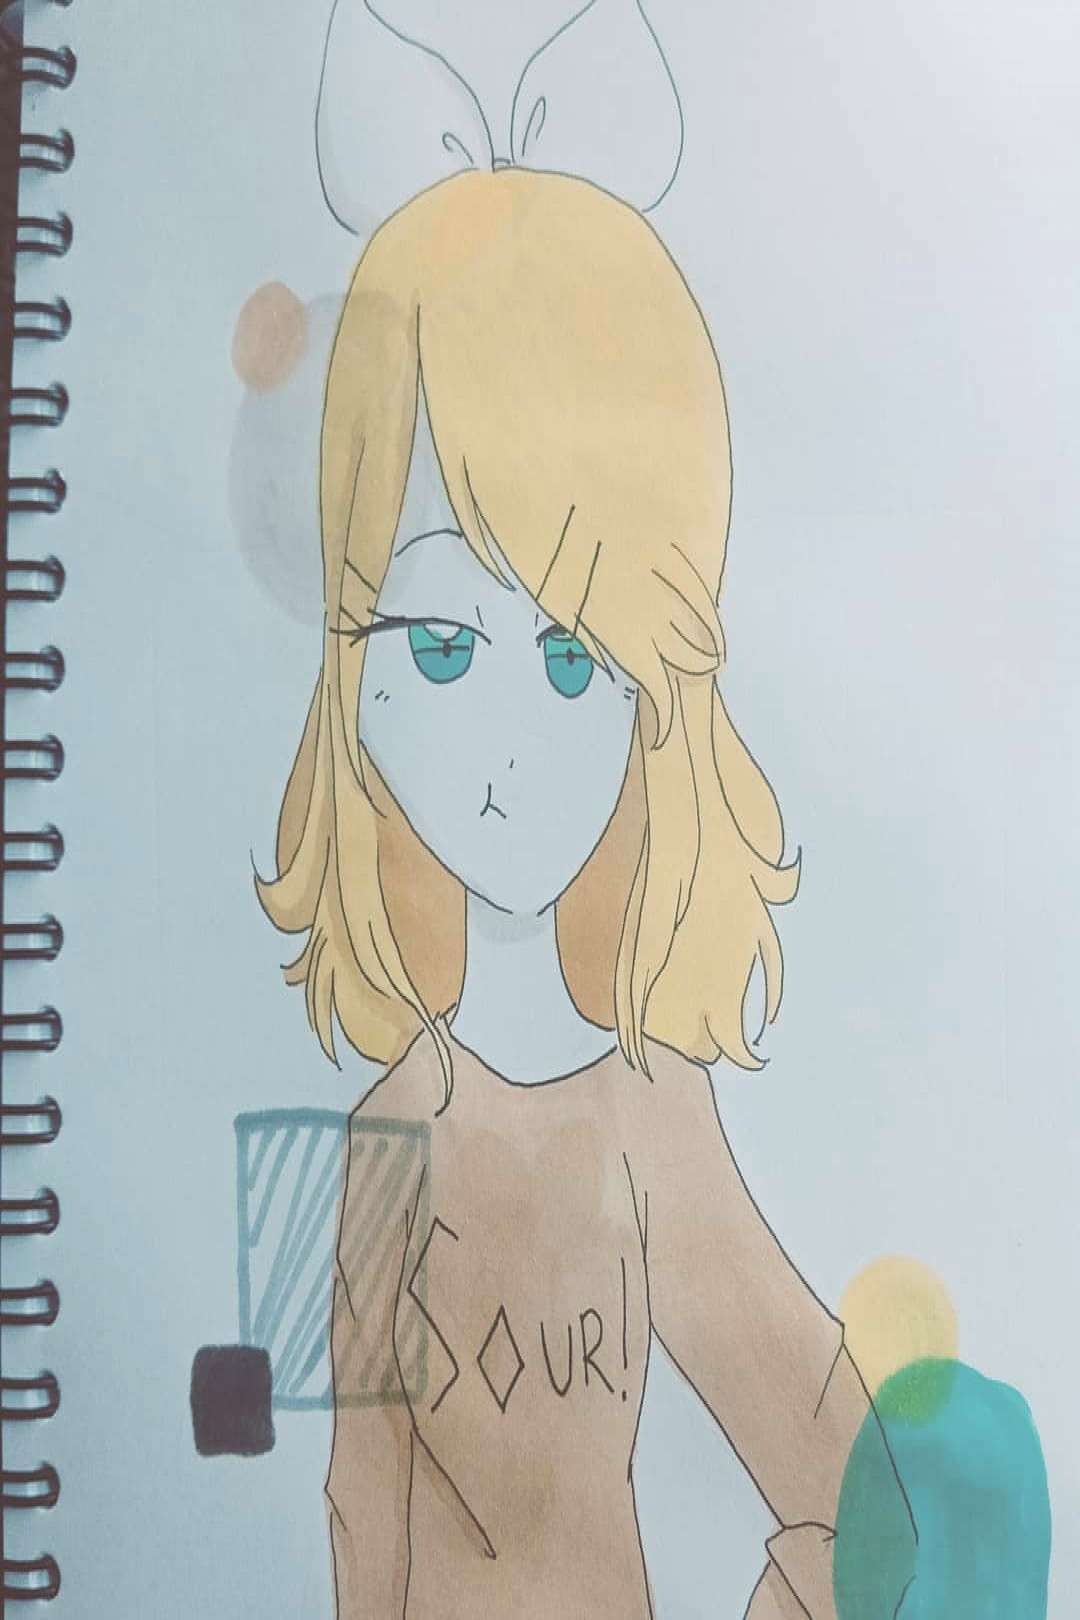 Here's a random drawing I made. It's Kagamine Rin! I love her son